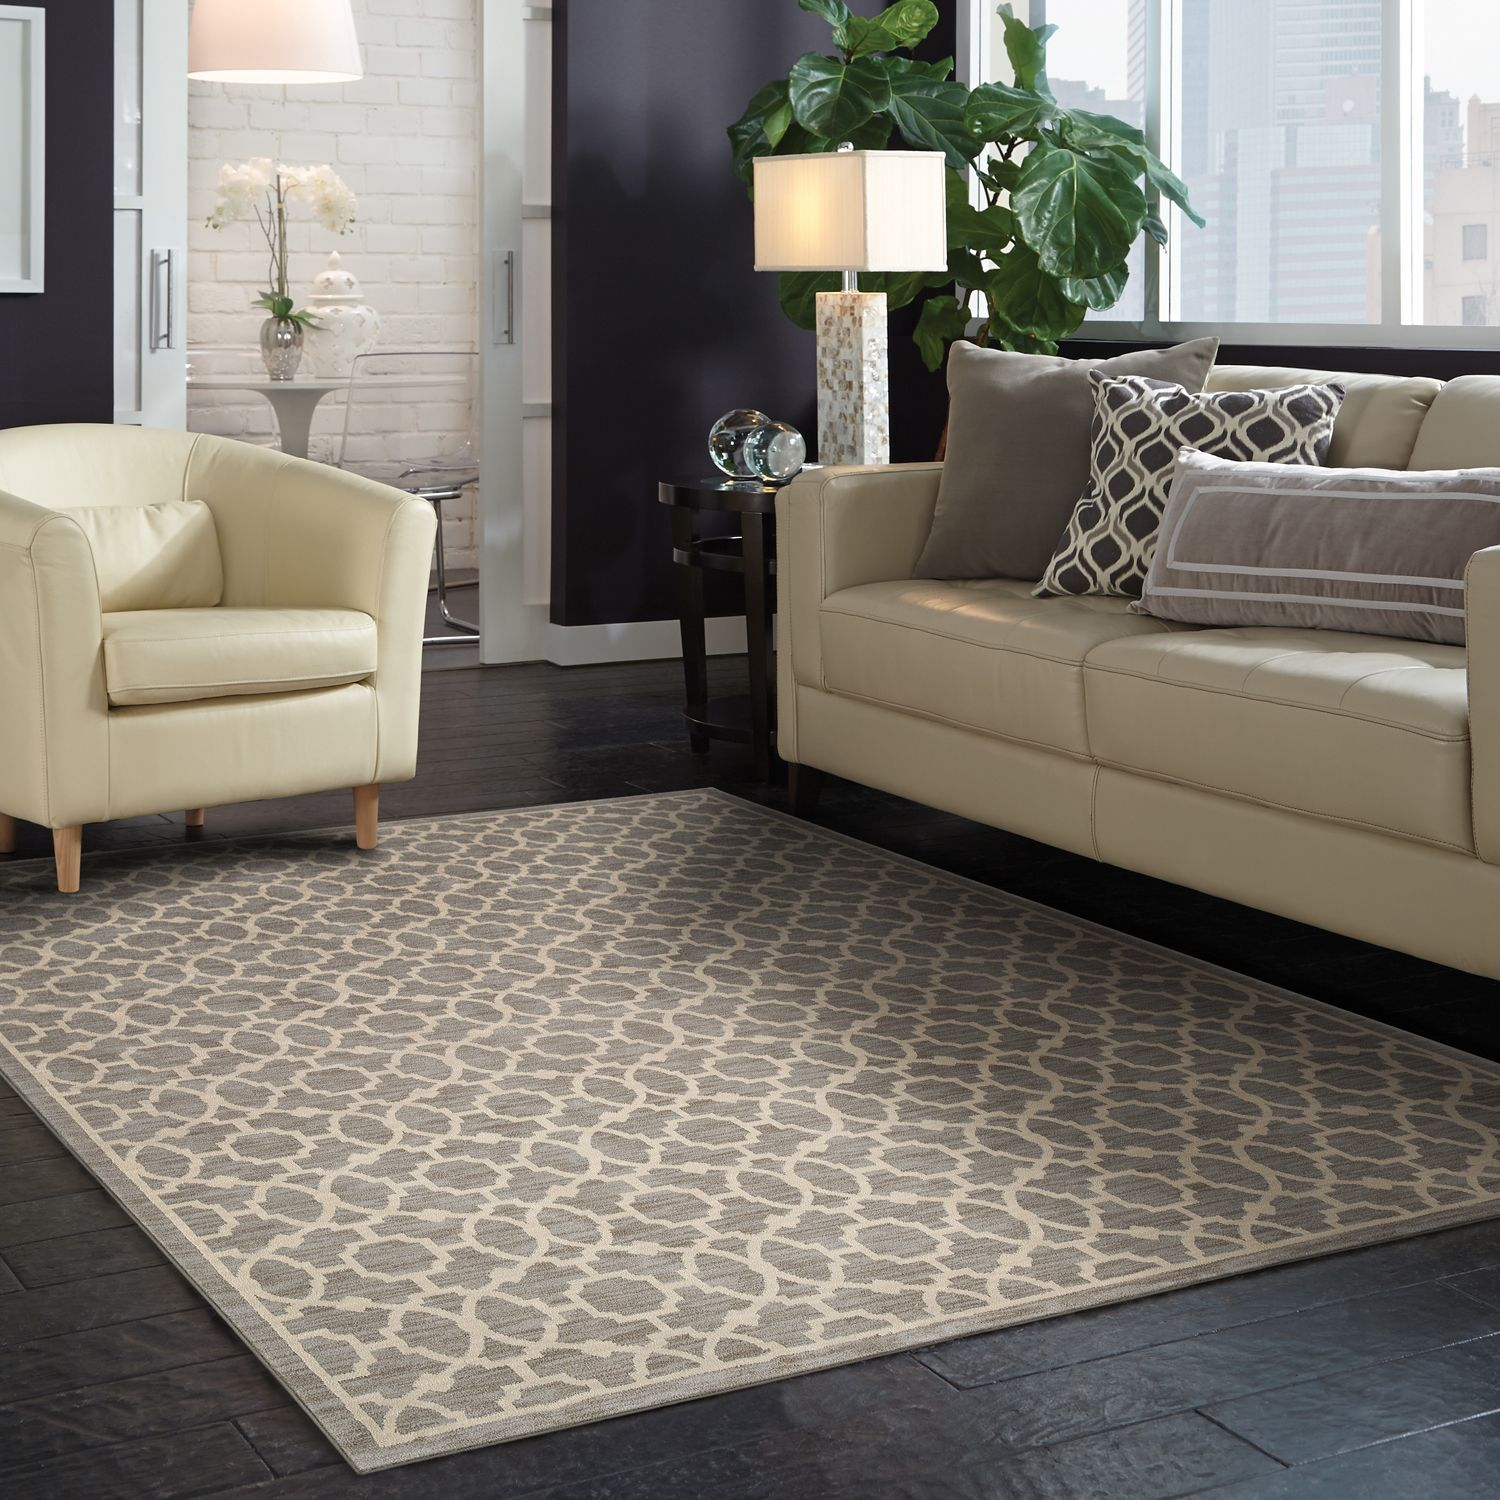 Pacific Living Collection 8 x10 Area Rug Simone Sam s Club